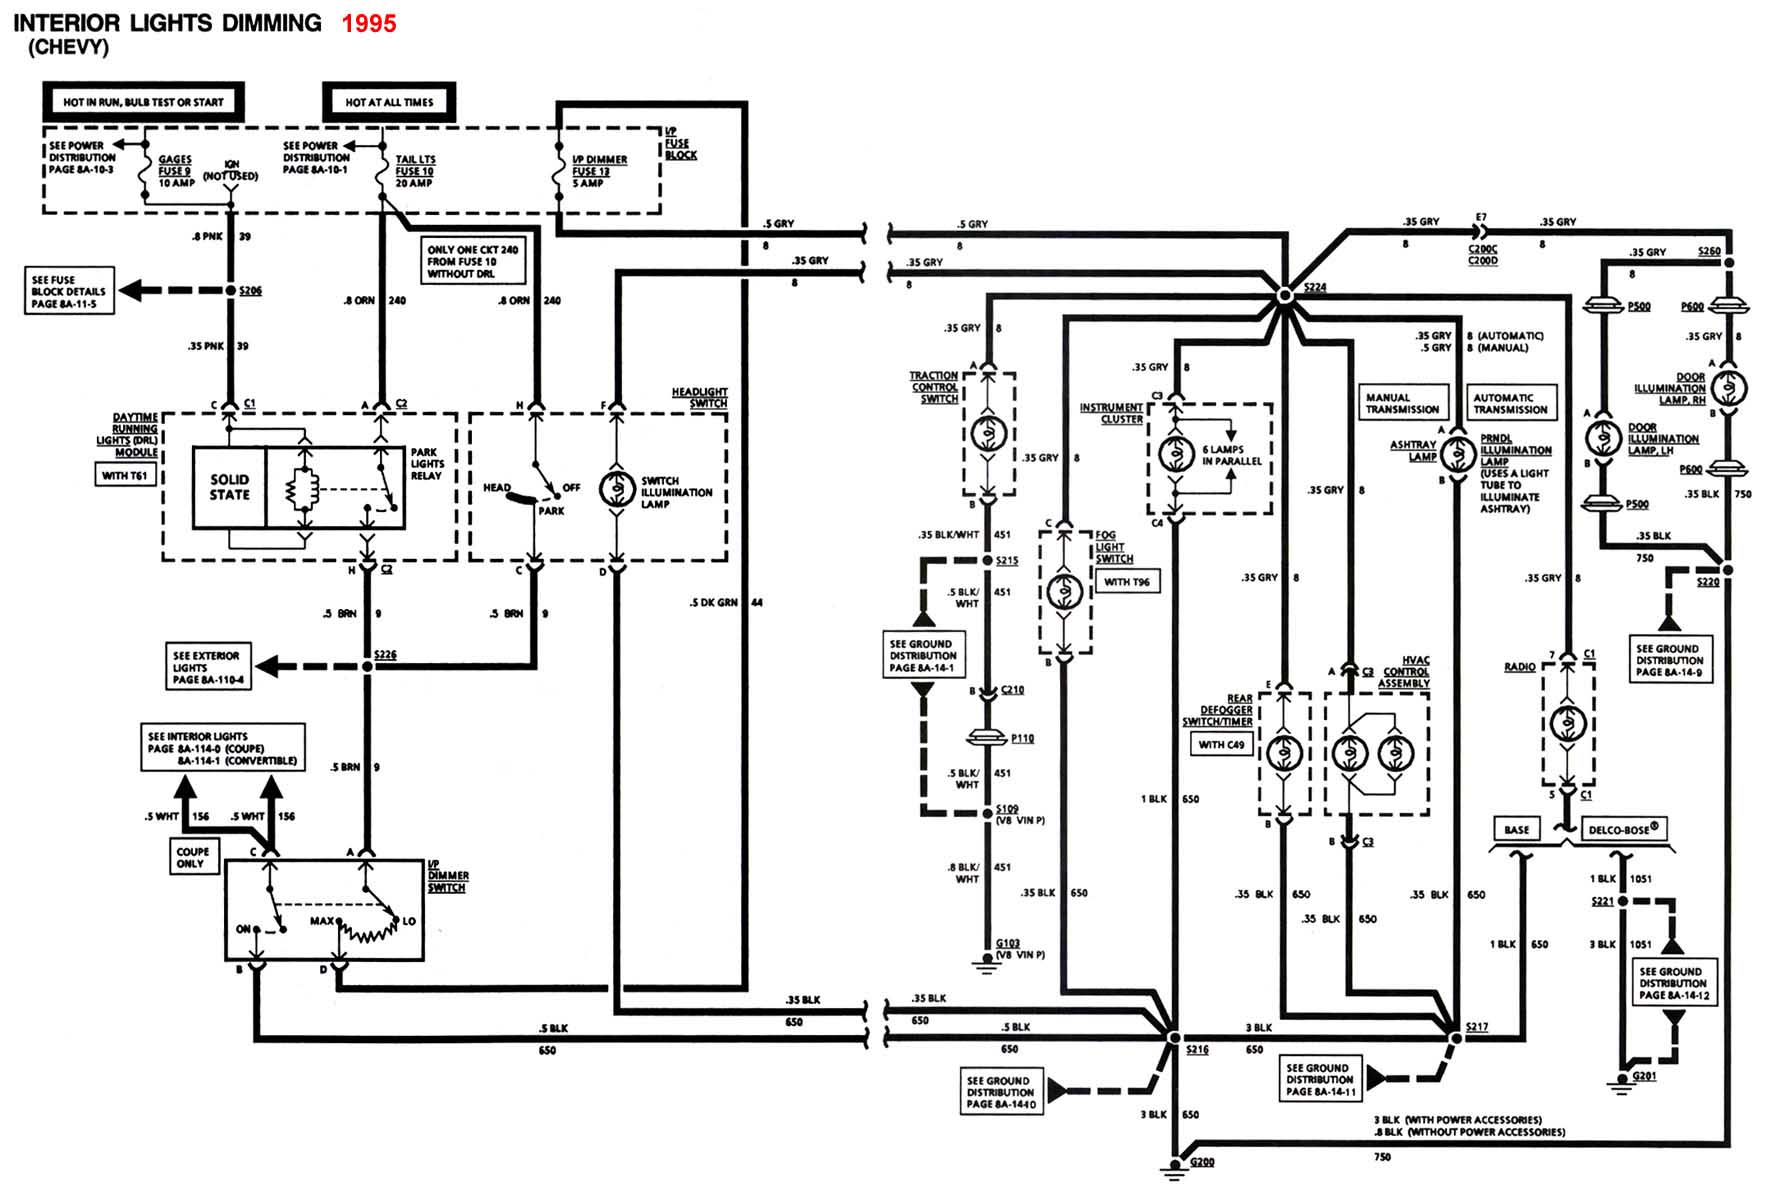 1993 corvette interior wiring diagram